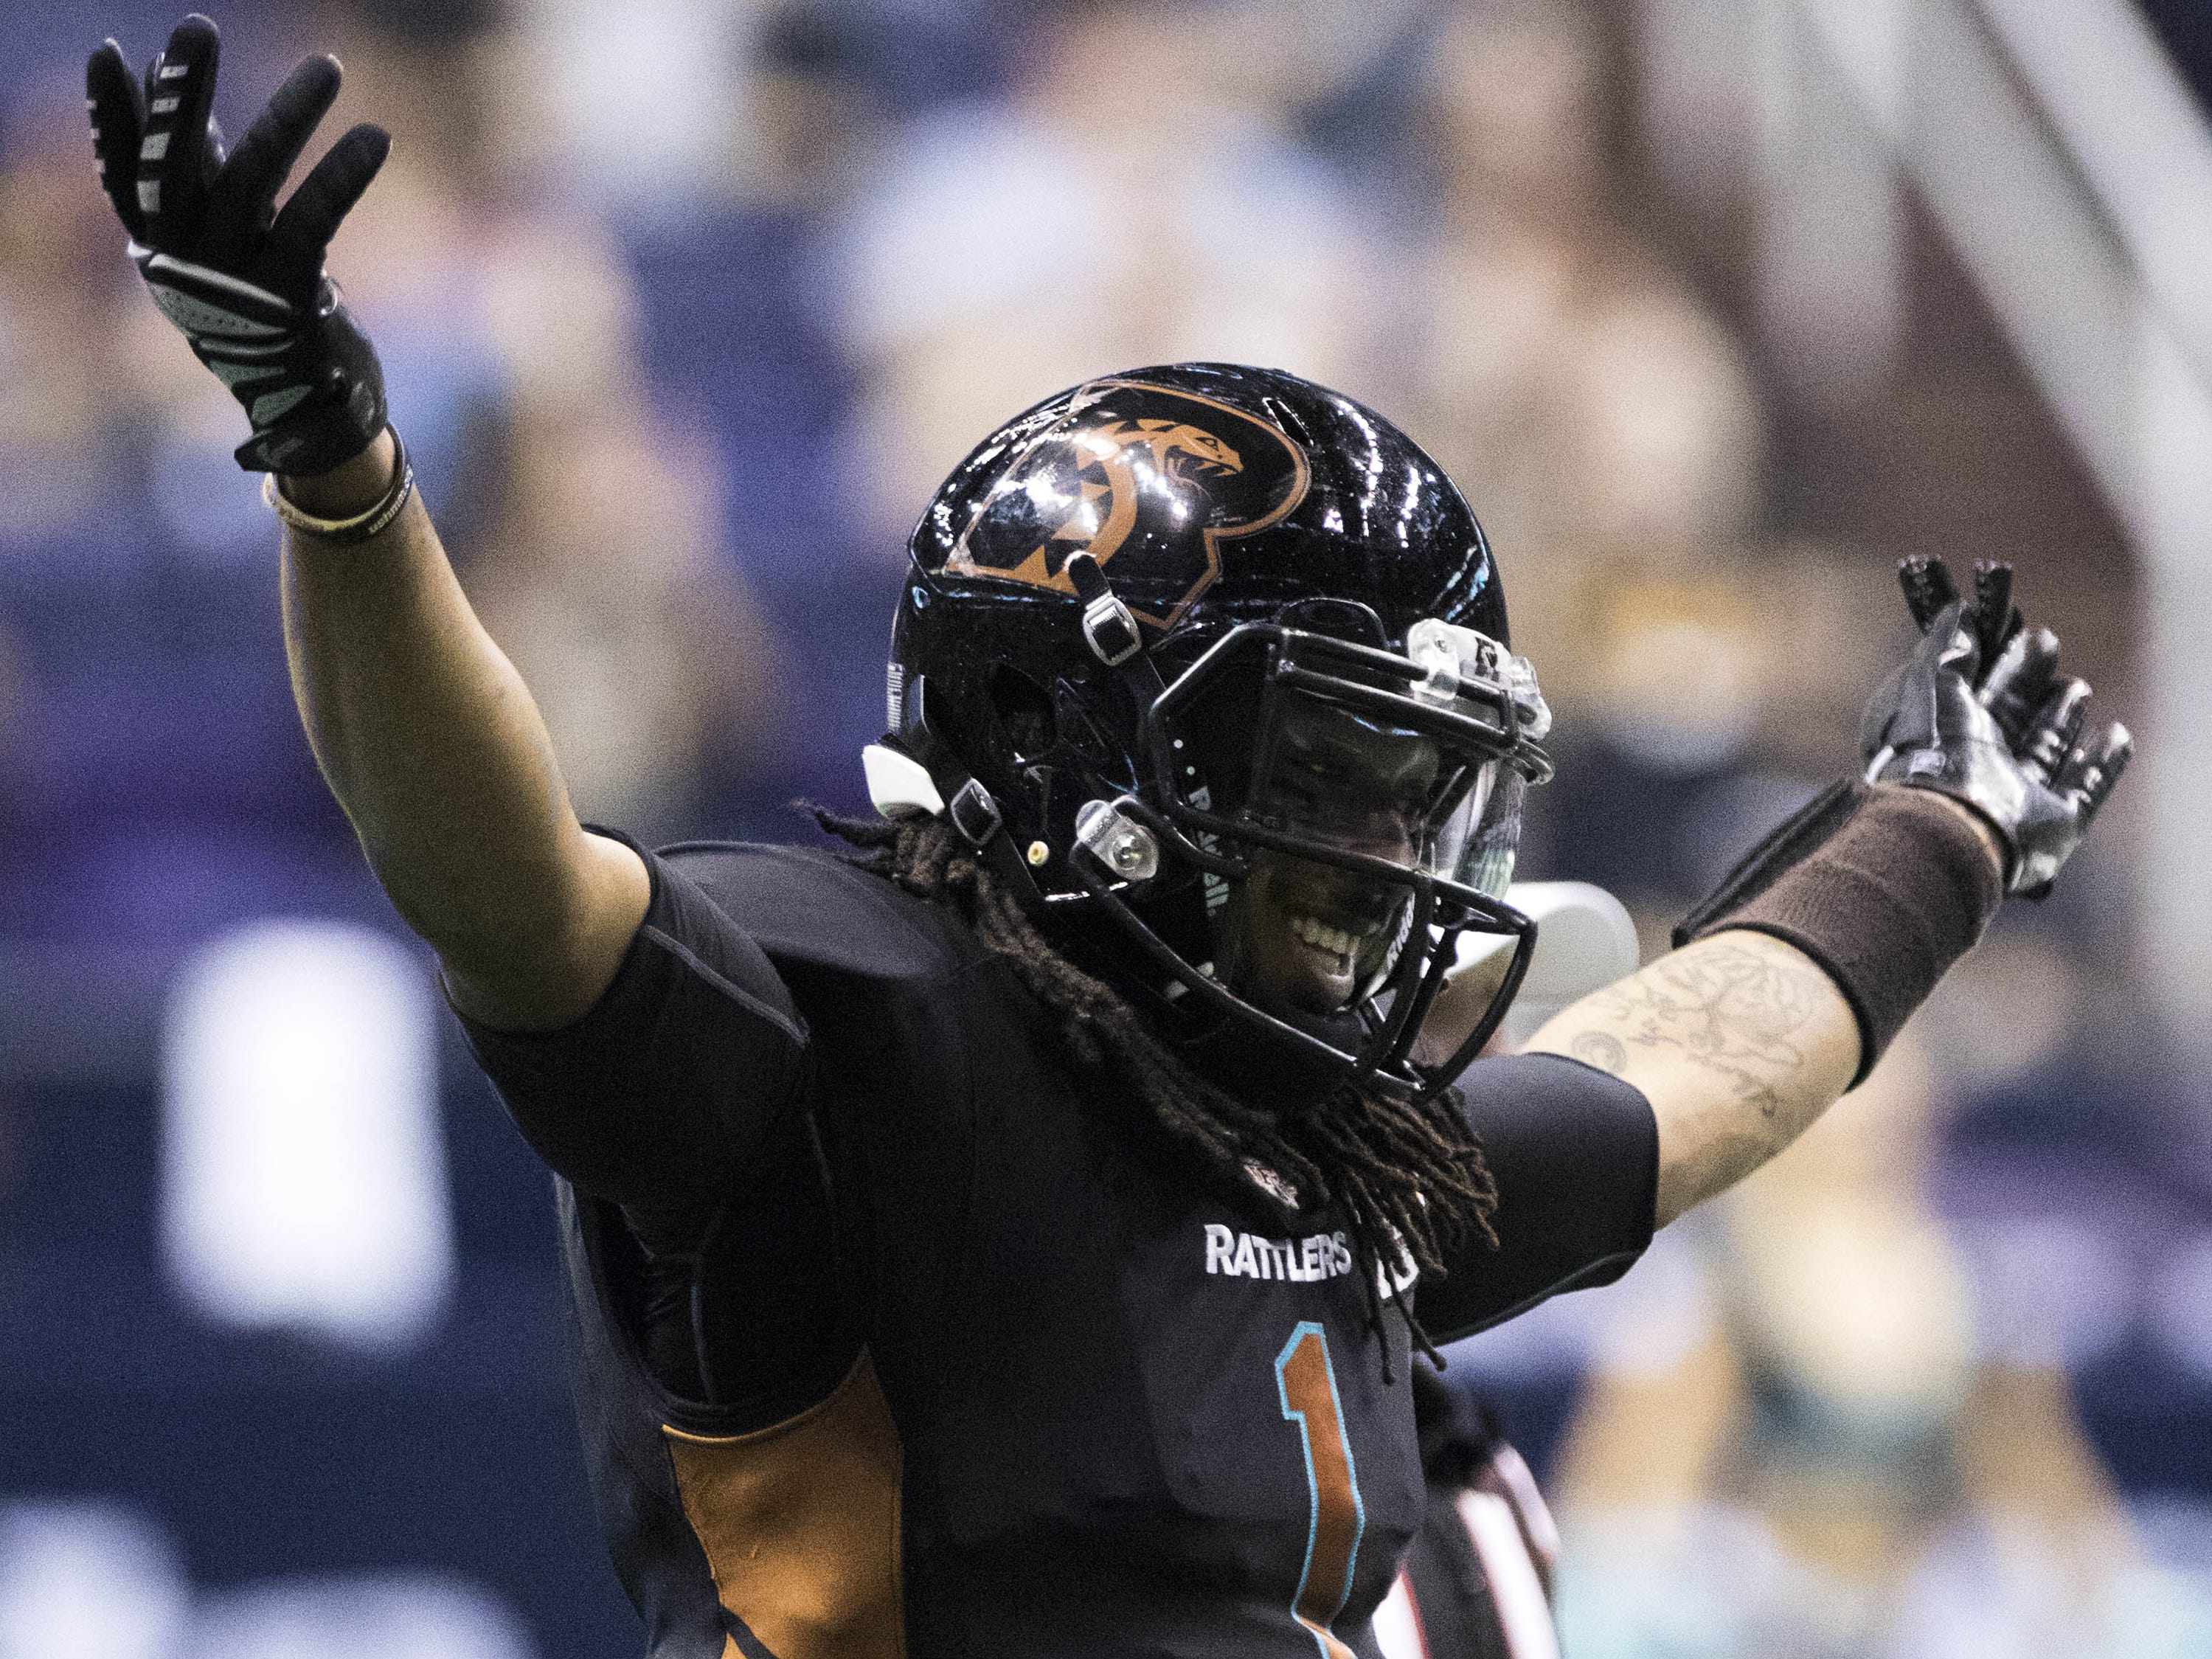 Arizona Rattlers Verlon Reed Jr.(1) celebrates against Cedar Rapids River Kings during their game at Talking Stick Resort Arena in Phoenix, Sunday, March 3, 2019.